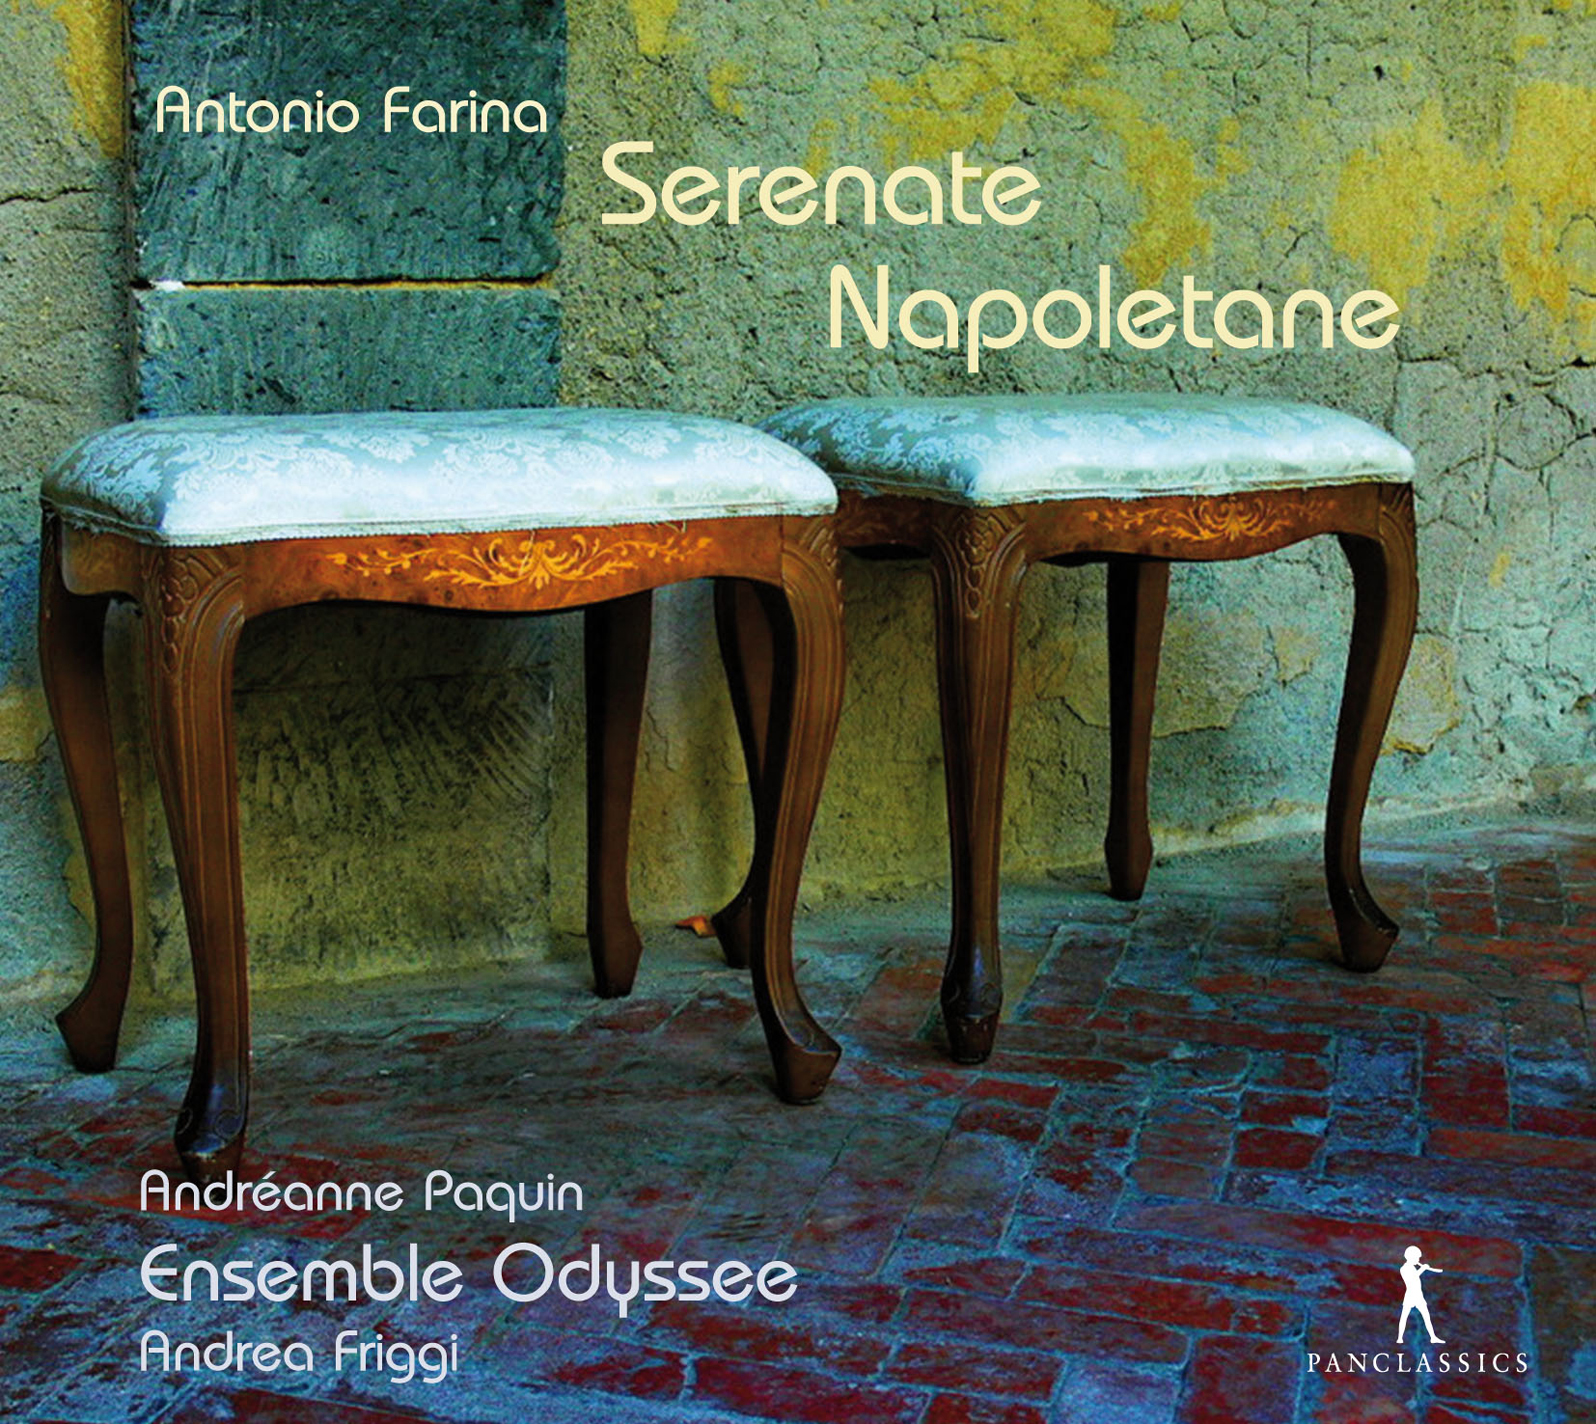 Sonata (Concerto No. 23) in C Major, Sonata (Concerto No. 23) in C Major: II. Fuga